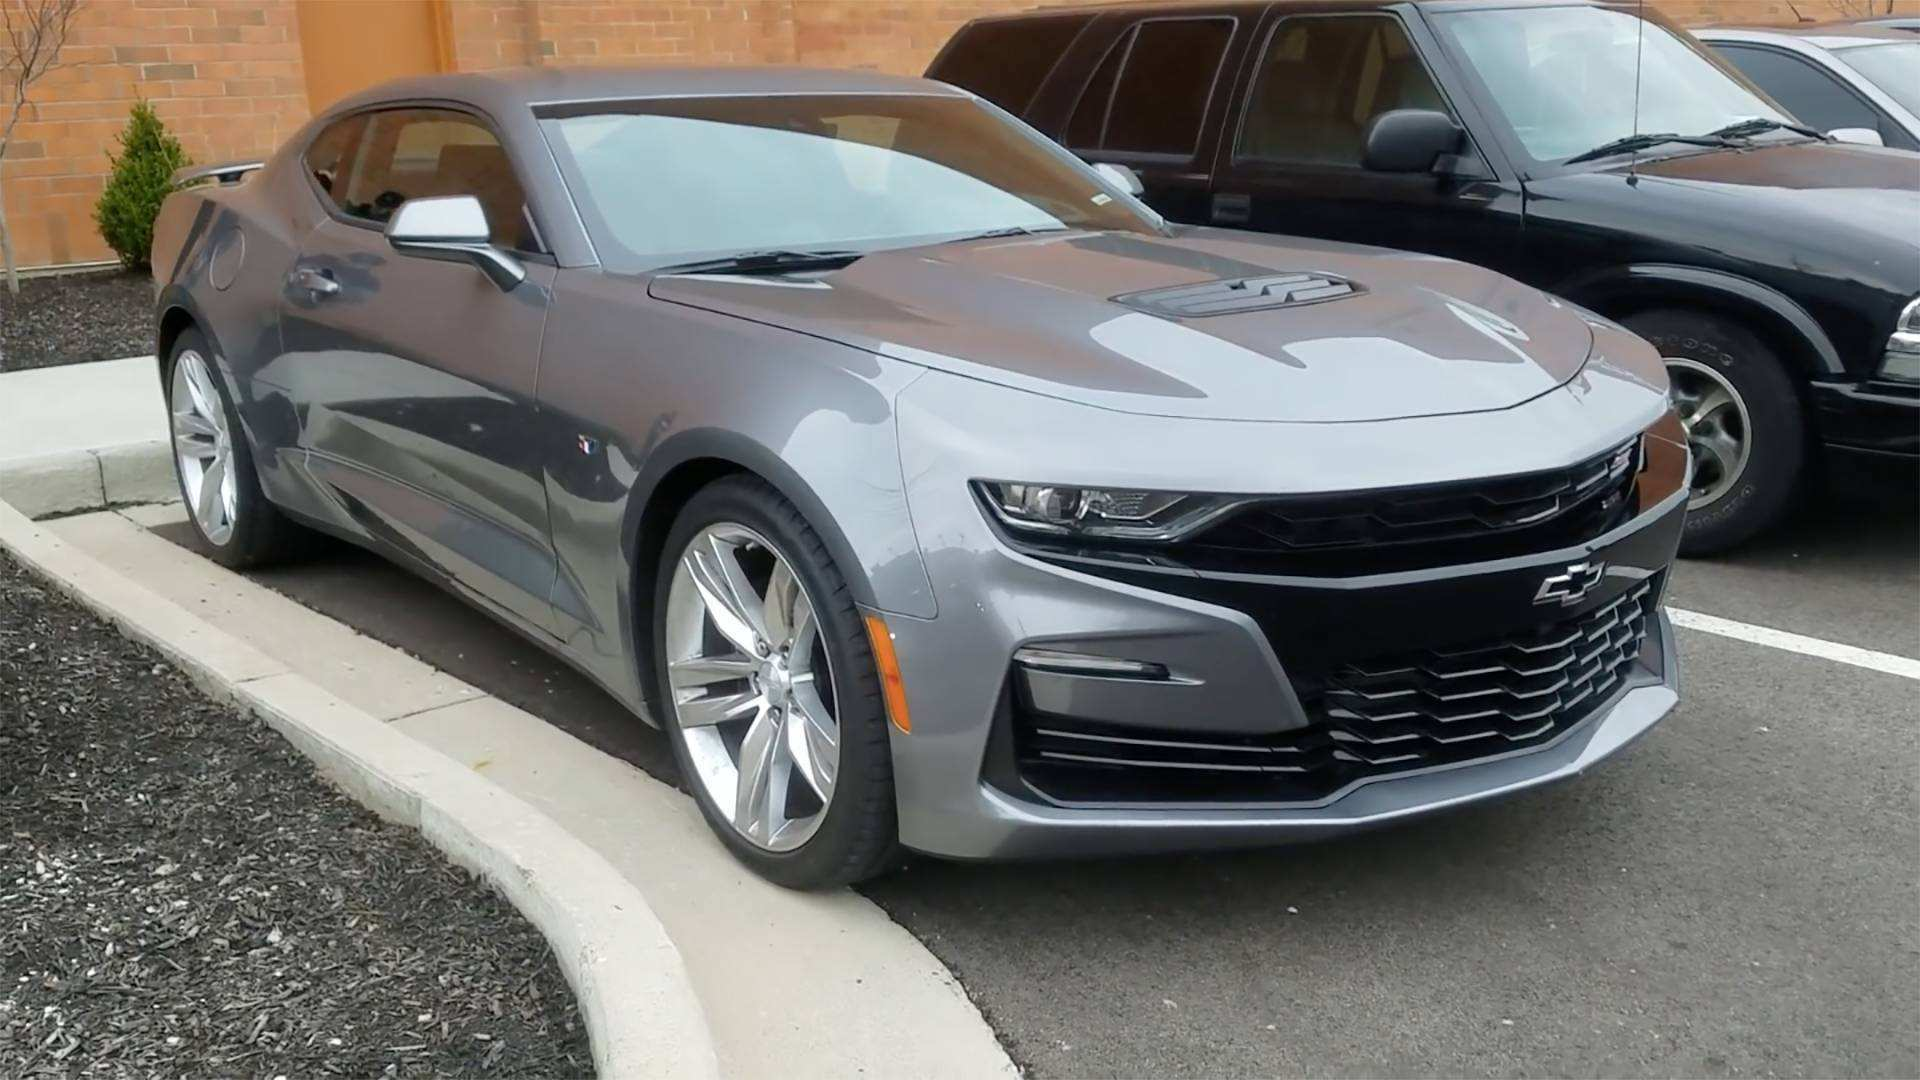 74 All New 2019 Chevy Camaro Release